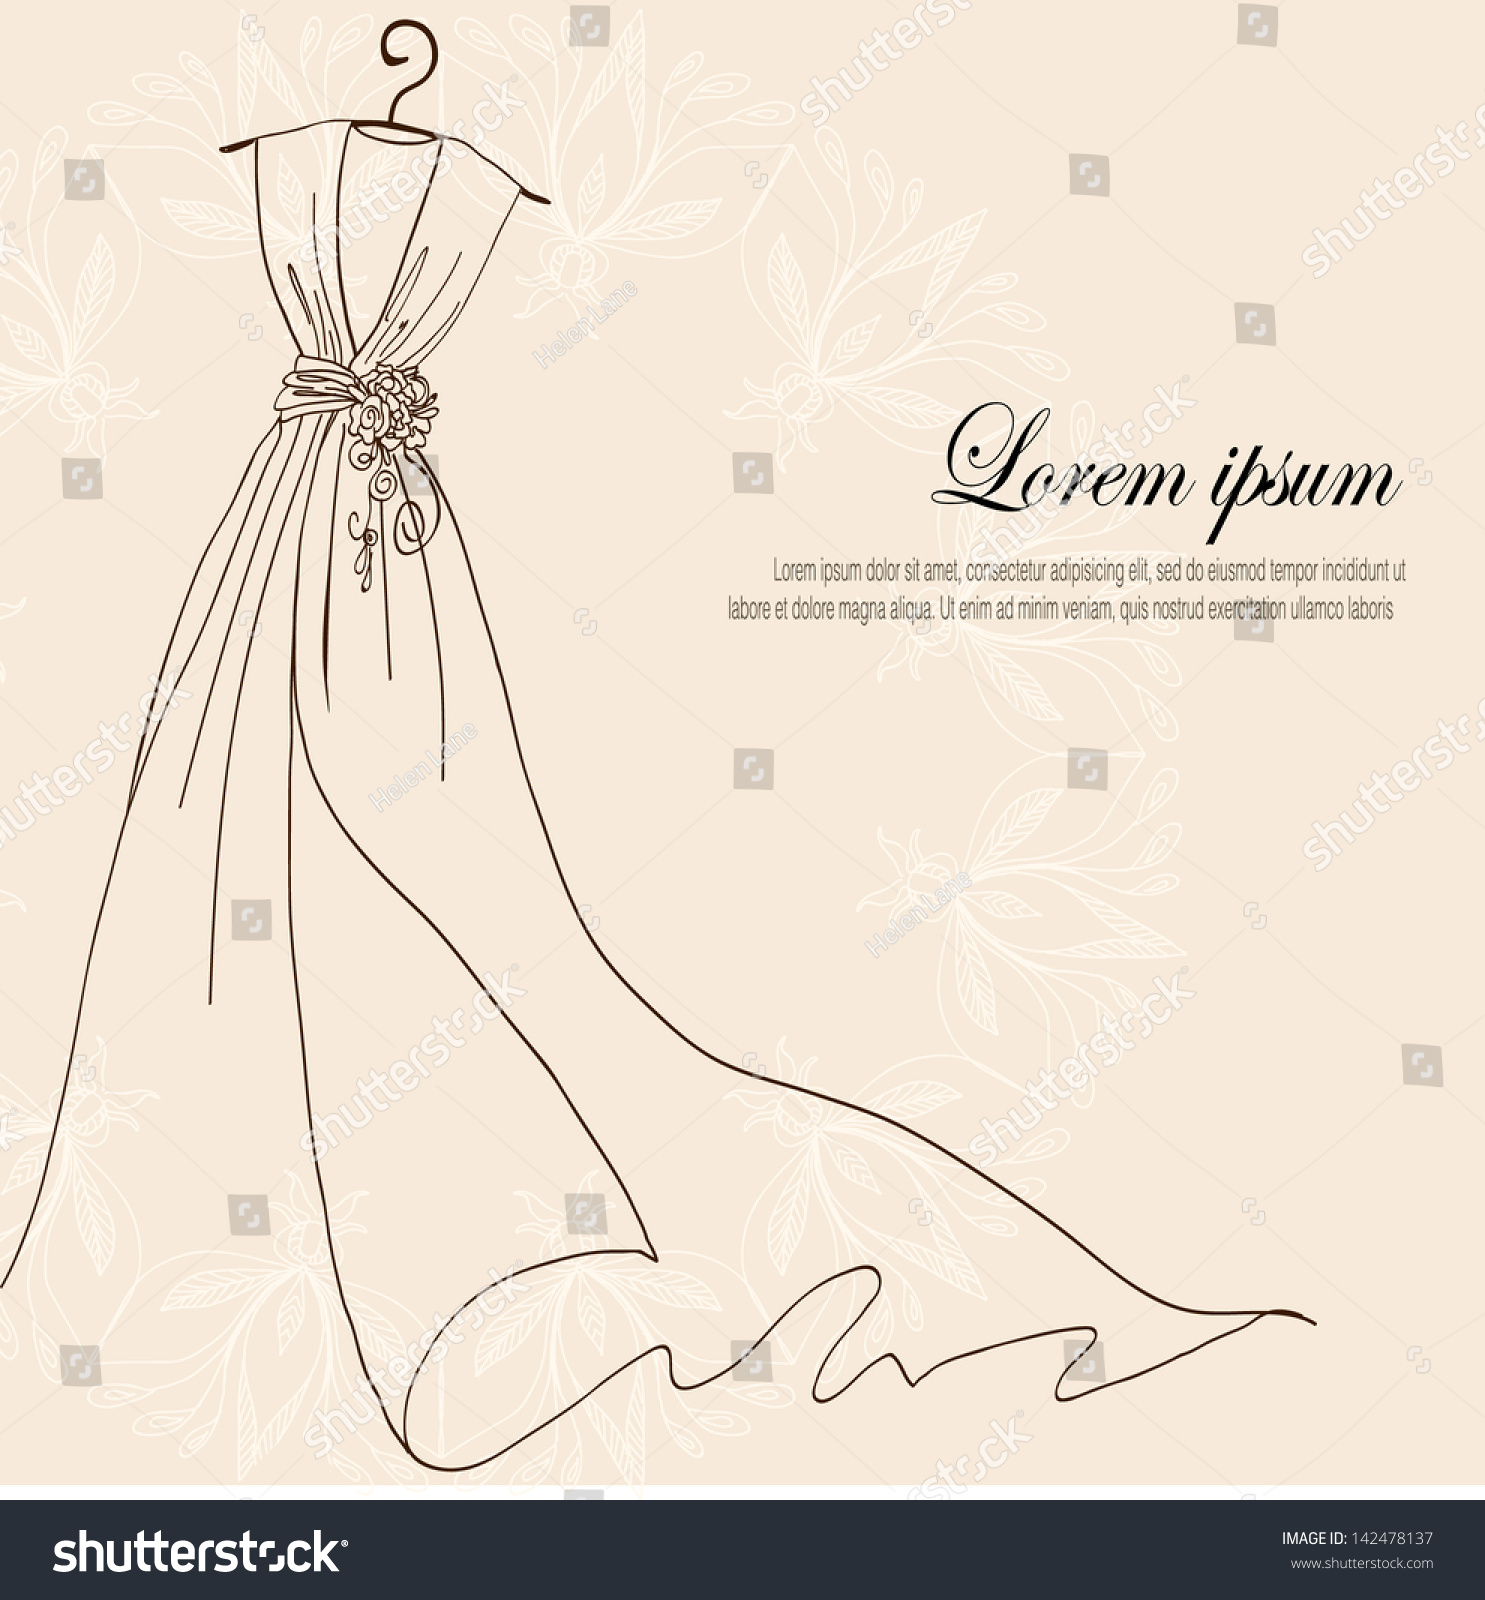 Invitation decorated with wedding dress on a hanger on vintage background